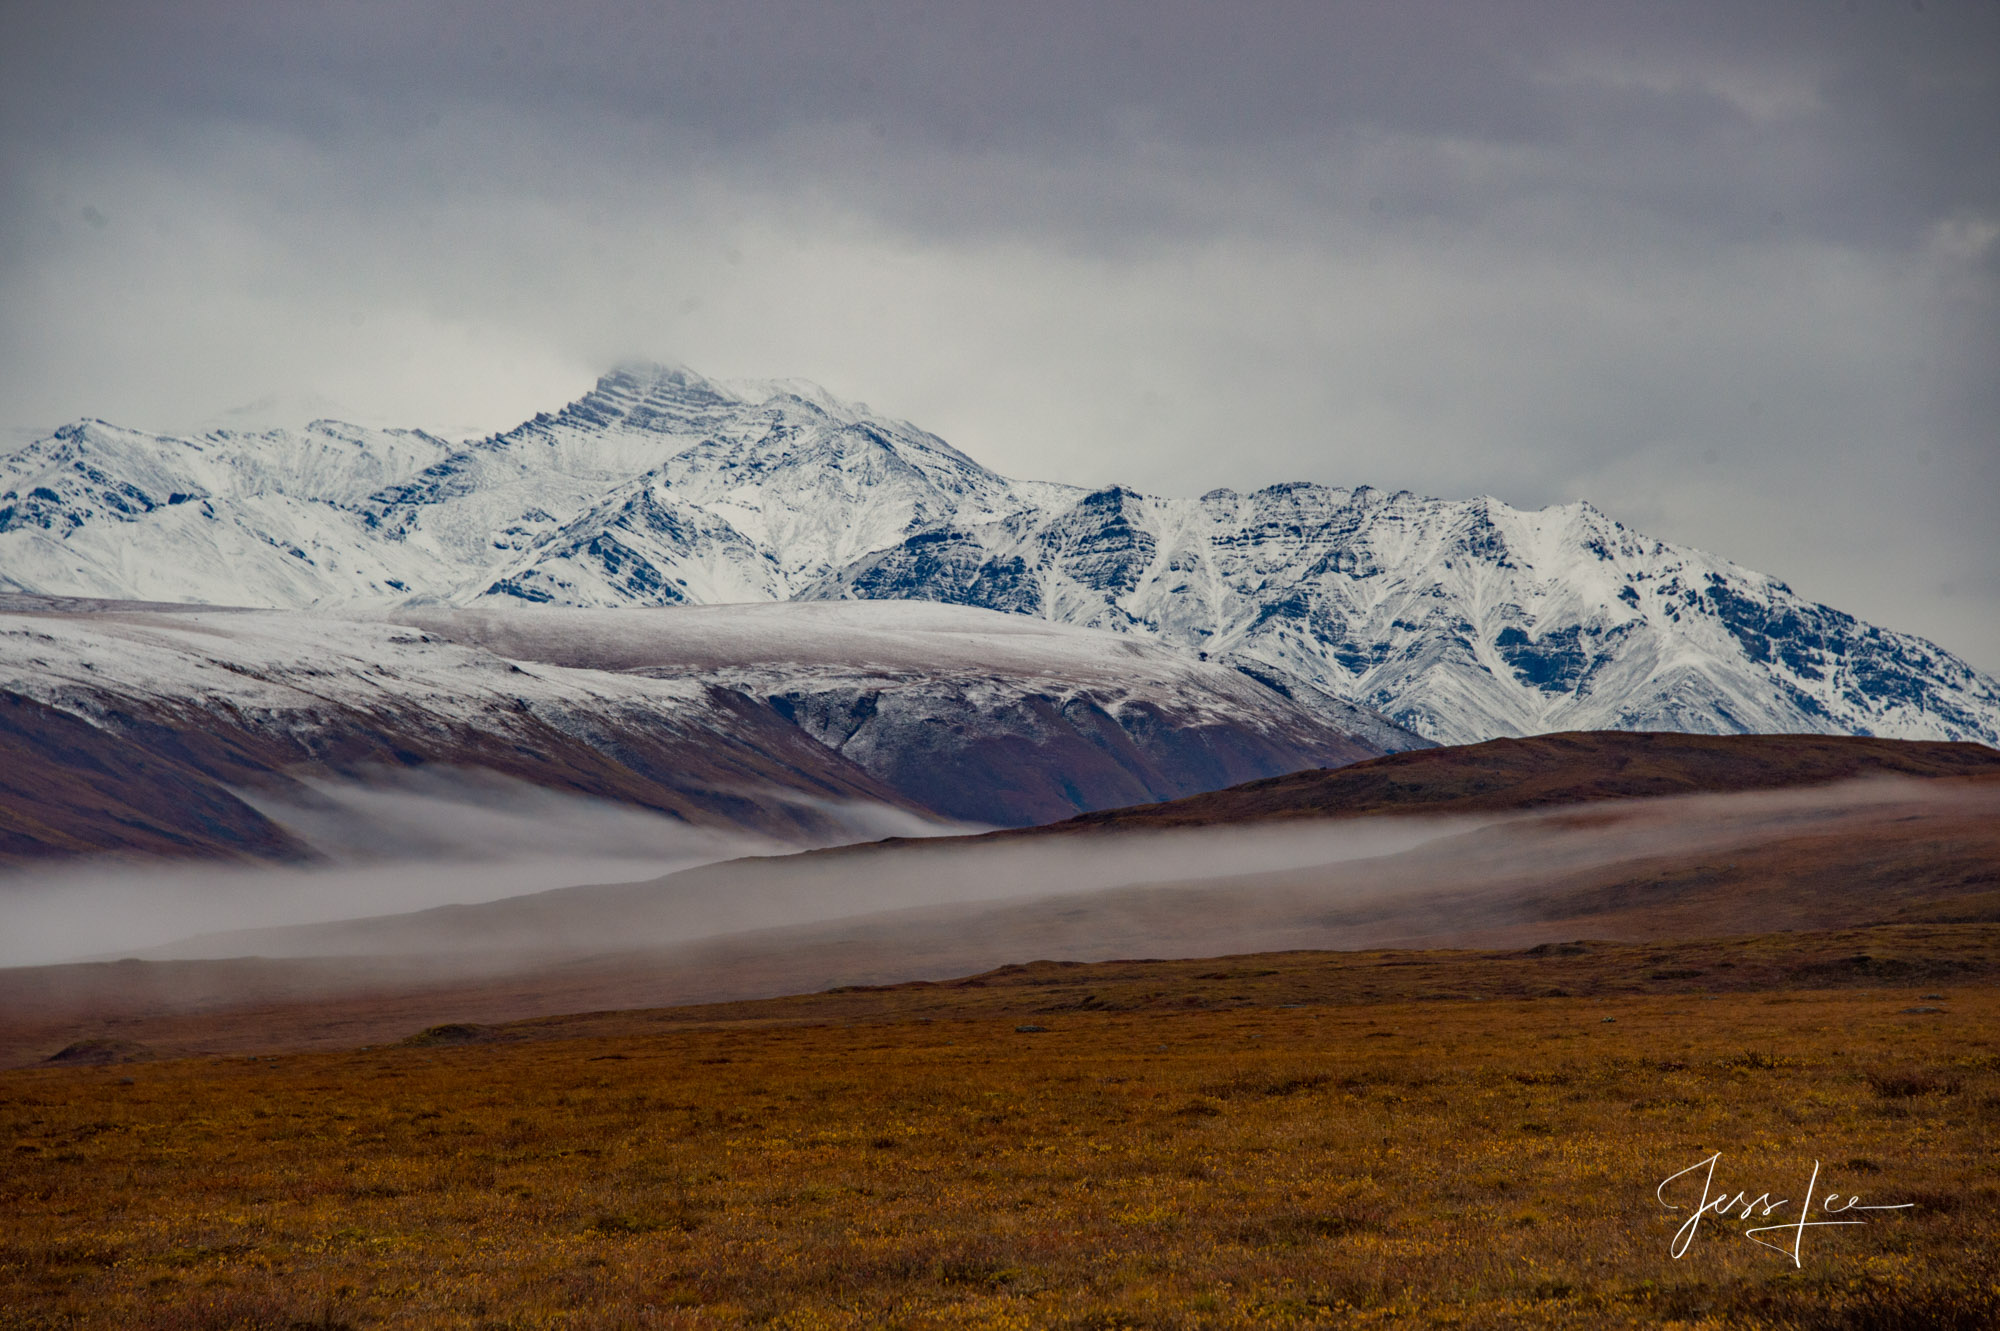 Autumn colors take hold in the Brooks Range in Alaska.